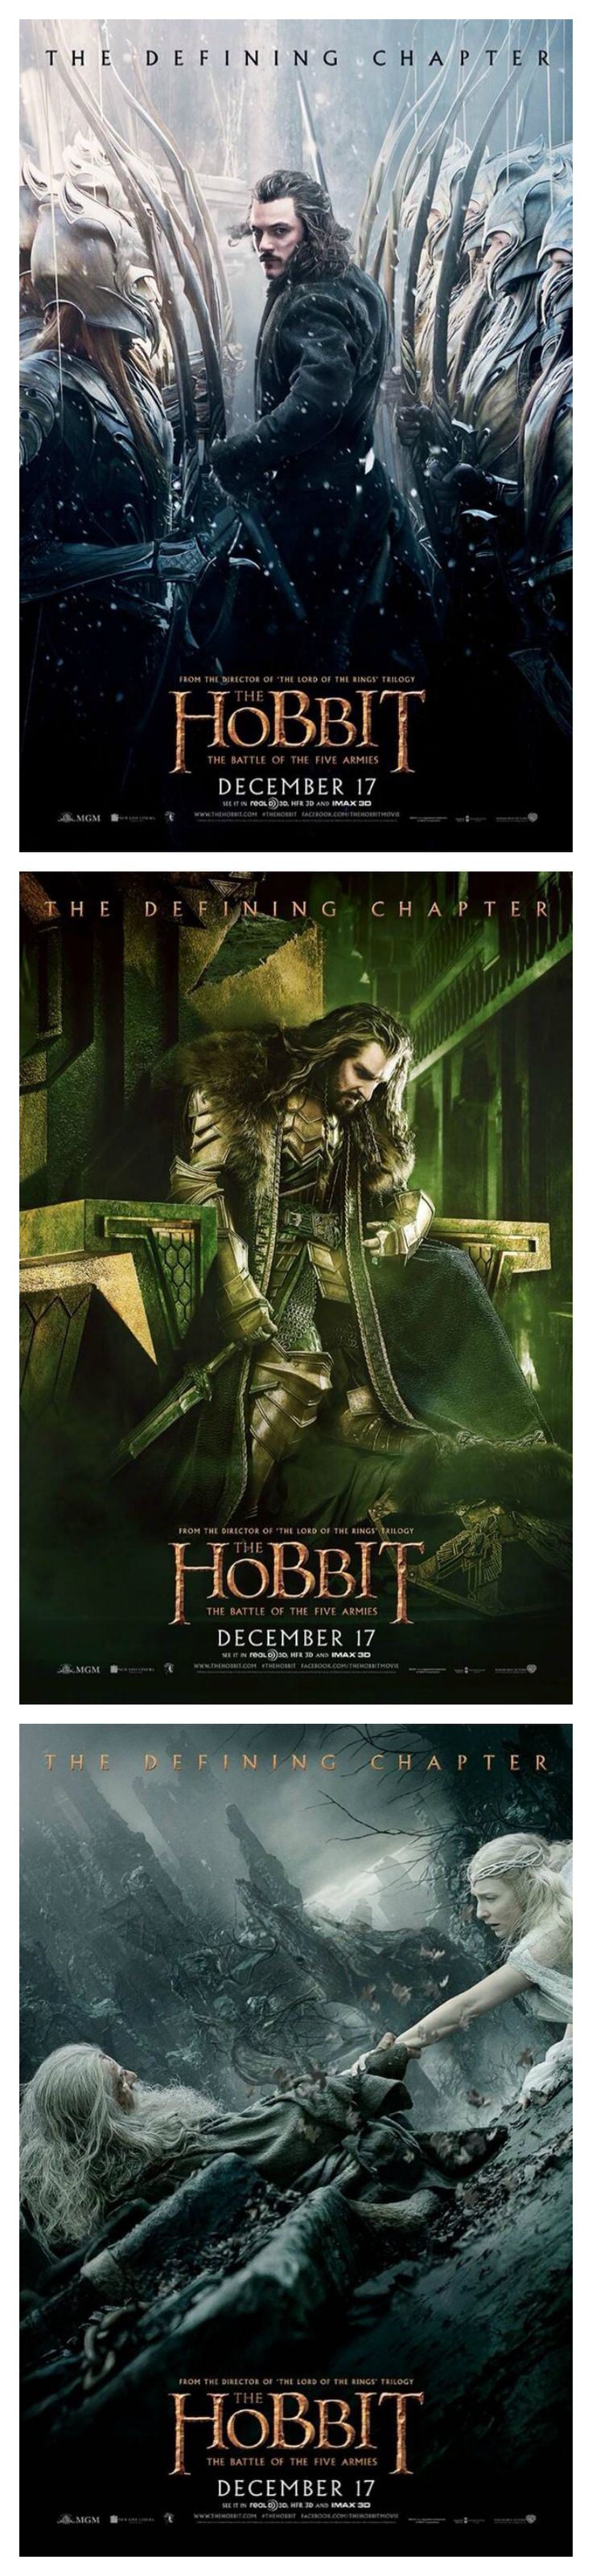 coats and outerwear The Hobbit: The Battle of the Five Armies. On top of everything that's going to happen, I'm going to cry like I did with ROTK simply because it's o… | Pinteres…